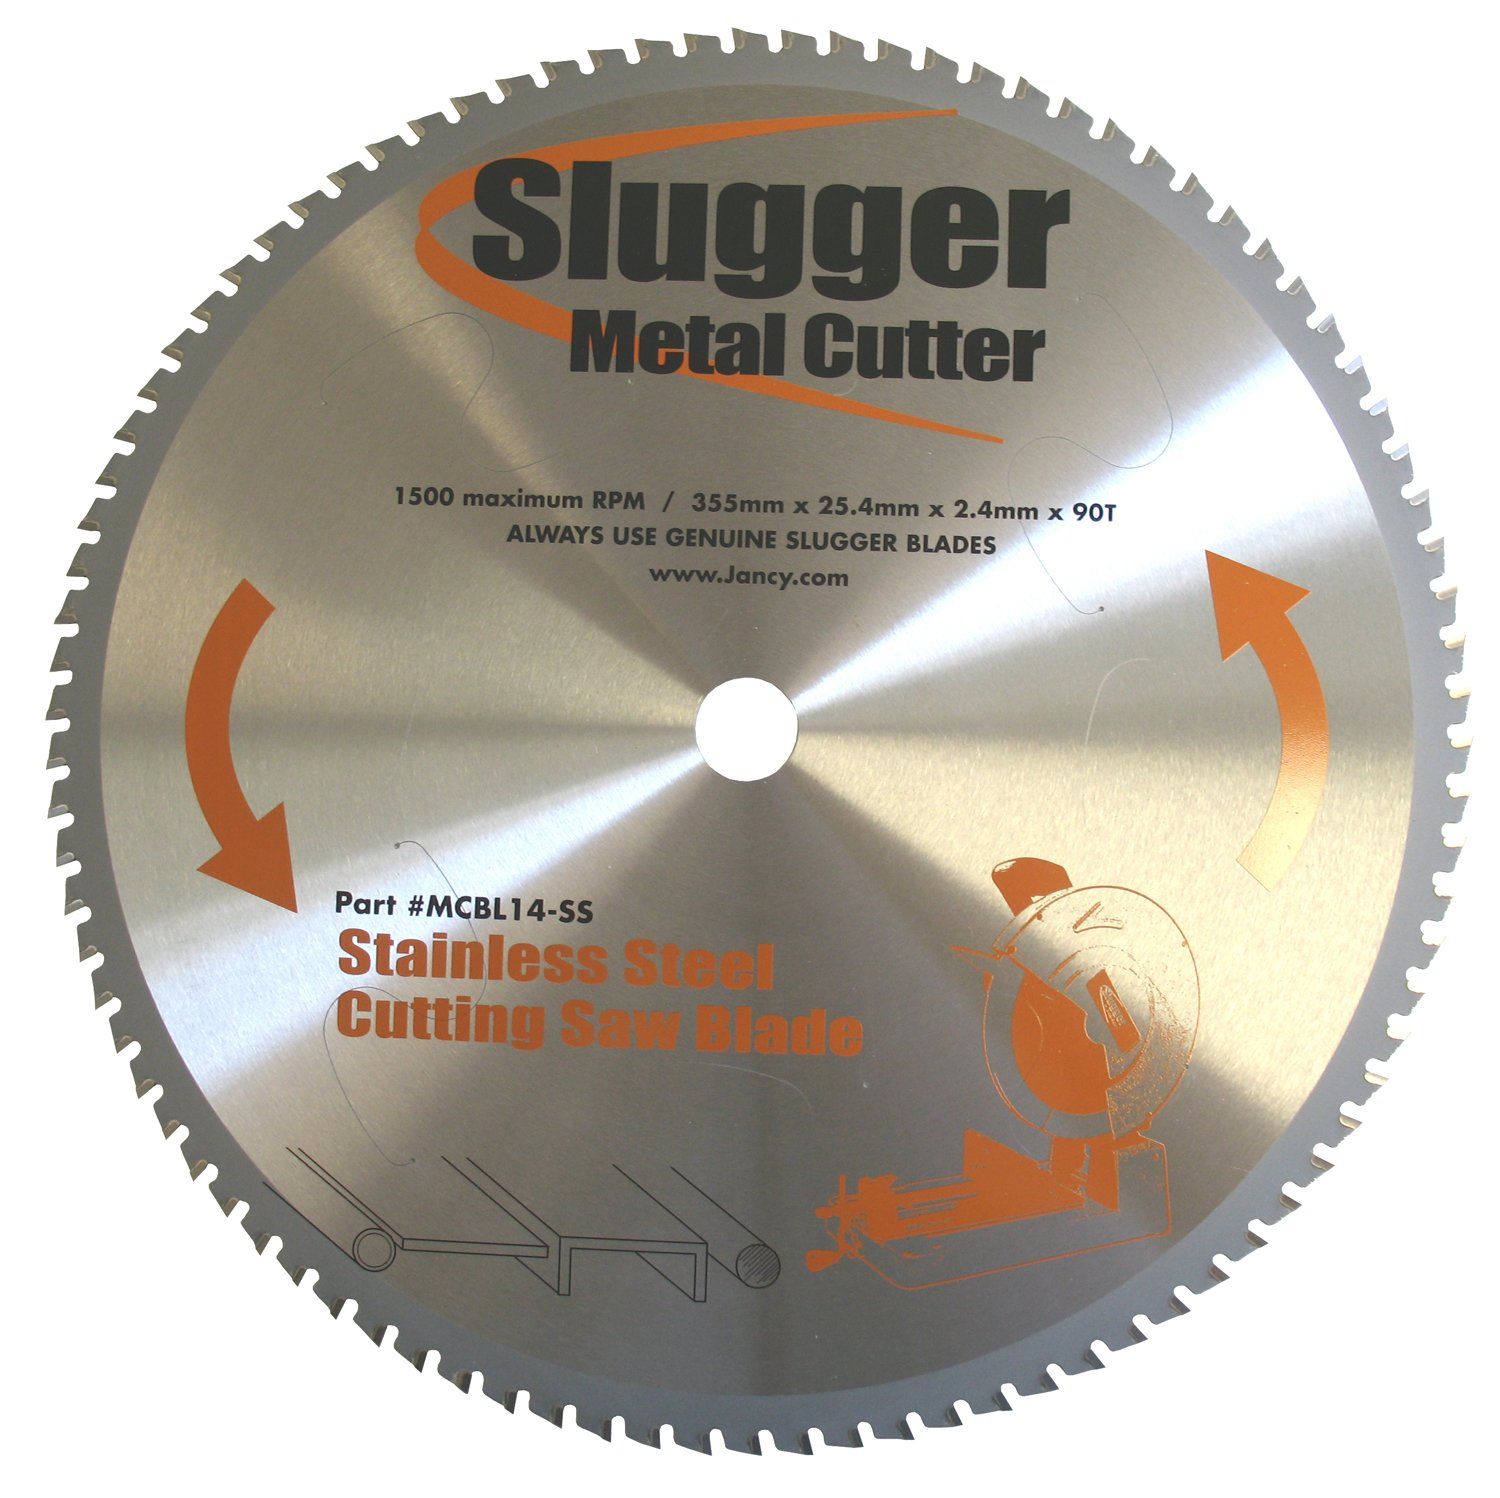 Jancy Slugger MCB14-SS Stainless Steel Cutting Saw Blade, 14'' Diameter, 90 Teeth